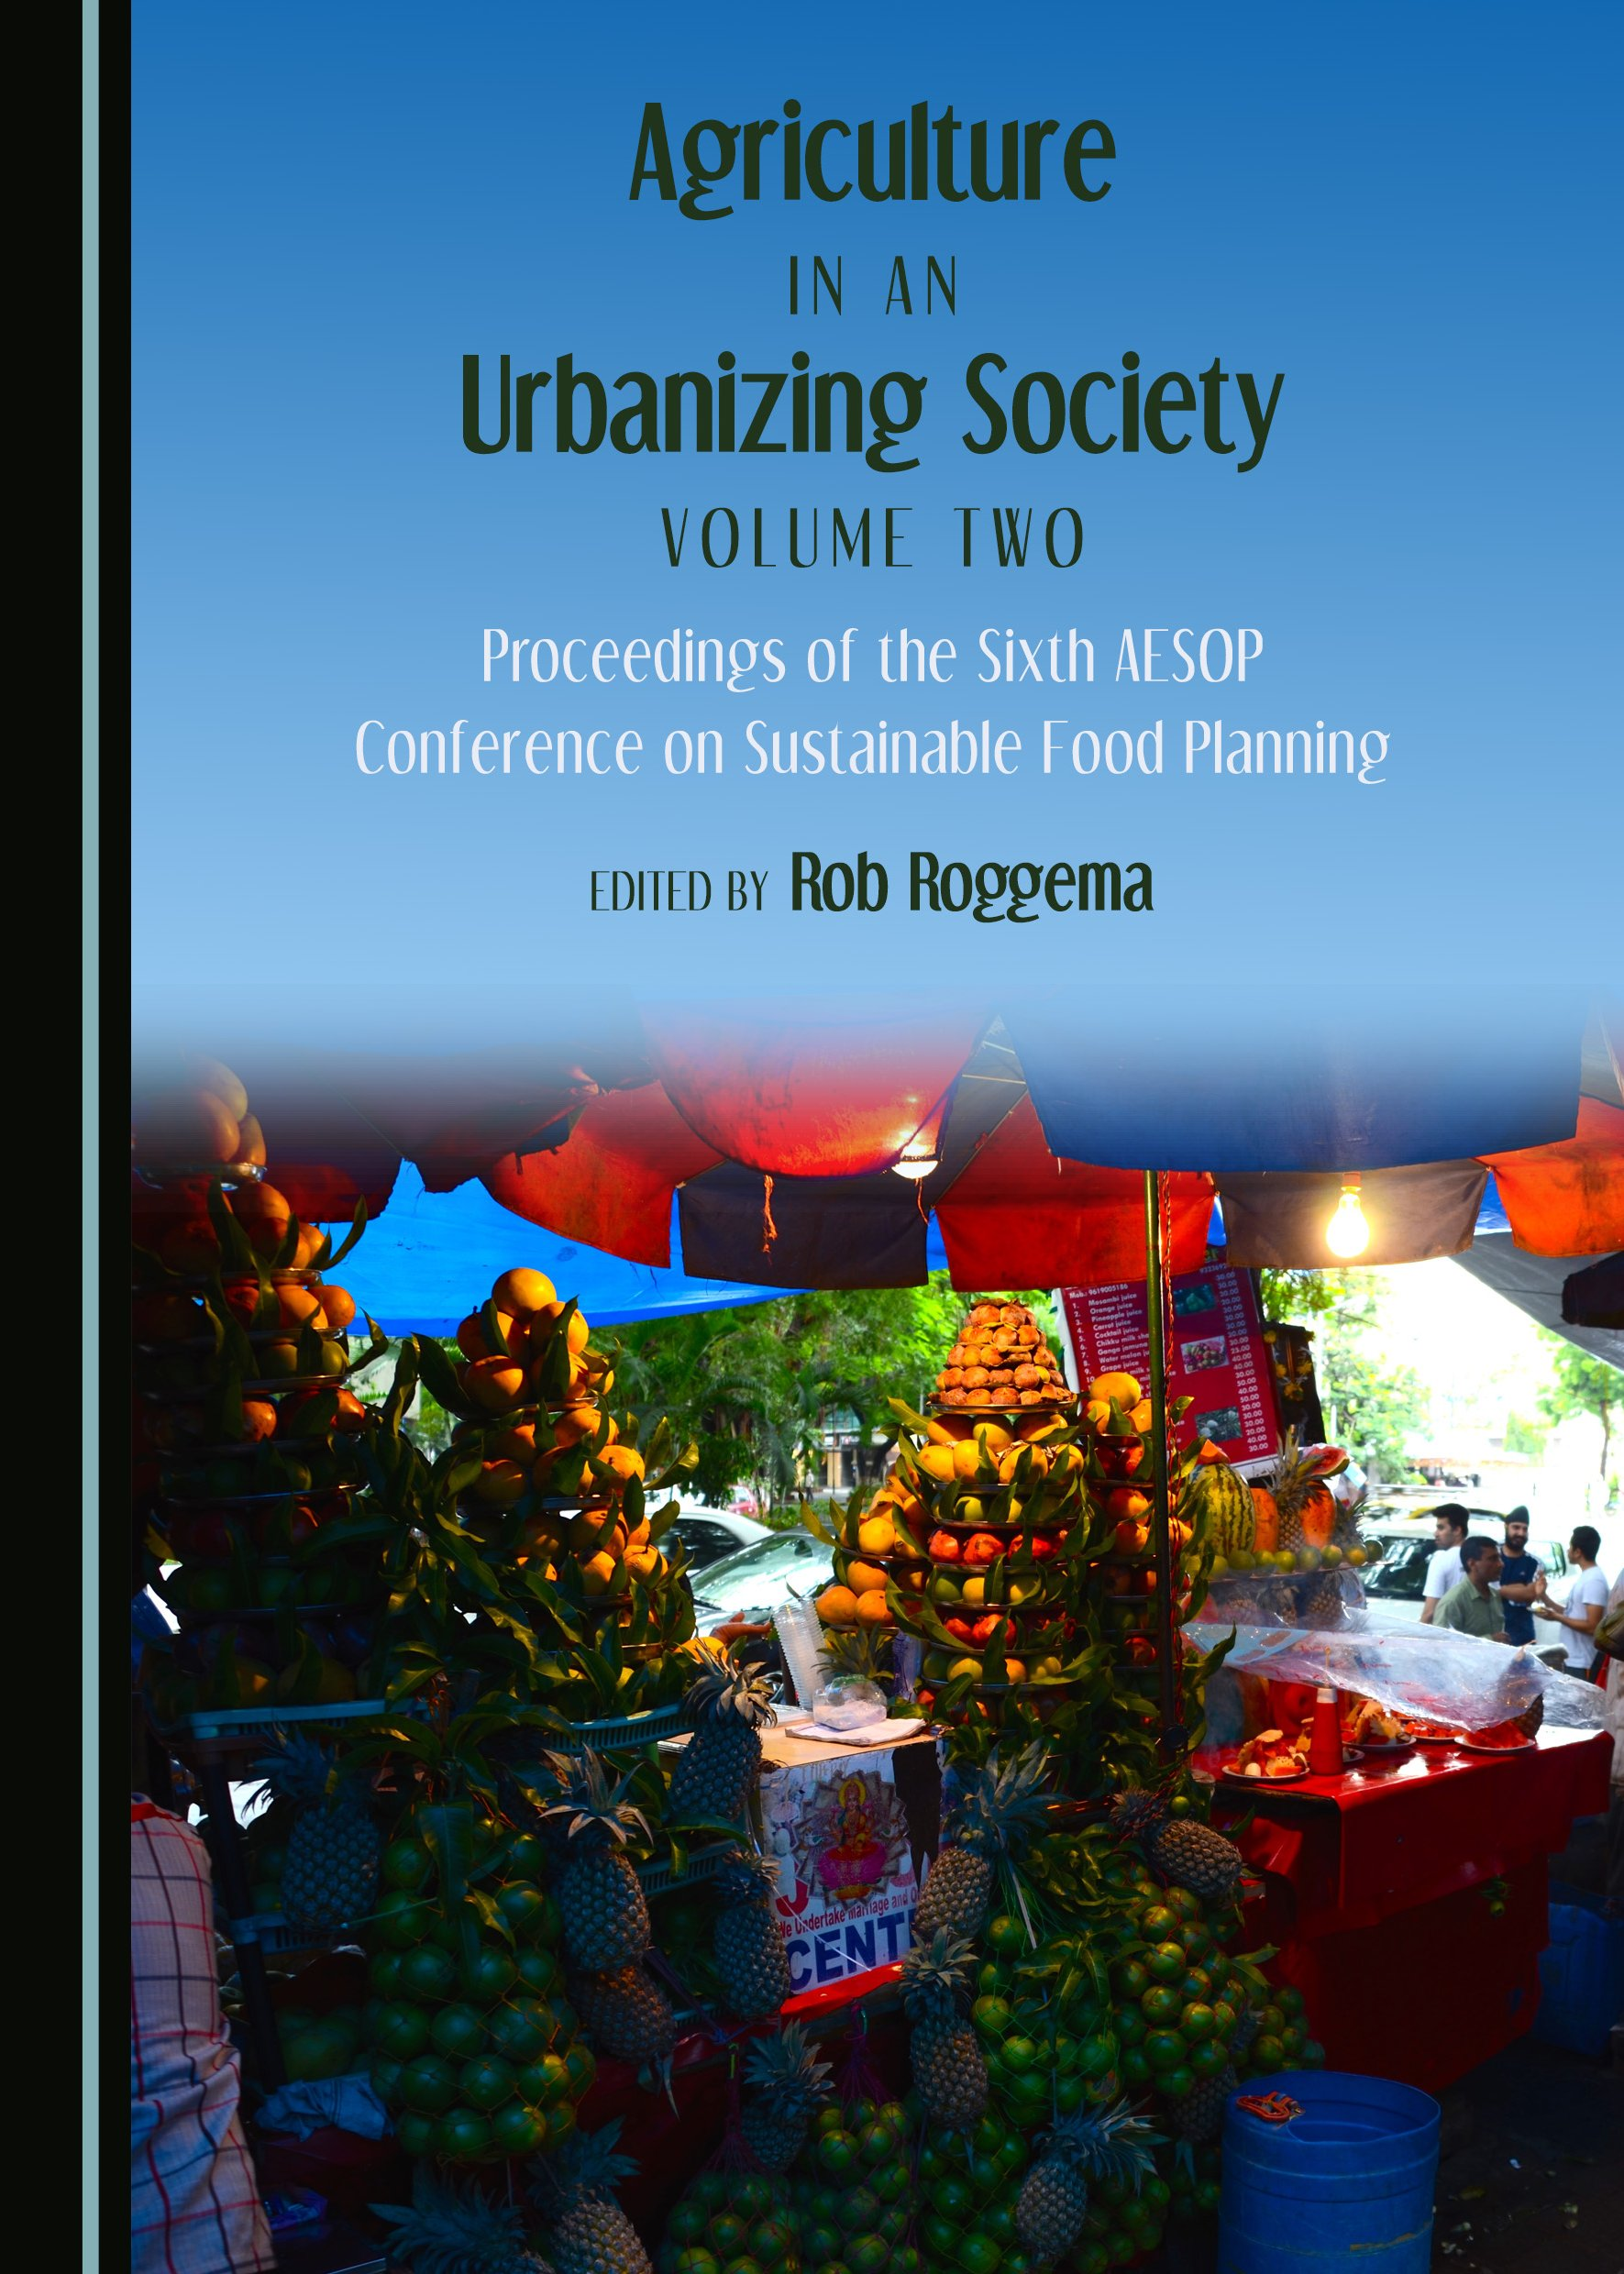 Agriculture in an Urbanizing Society Volume Two: Proceedings of the Sixth AESOP Conference on Sustainable Food Planning